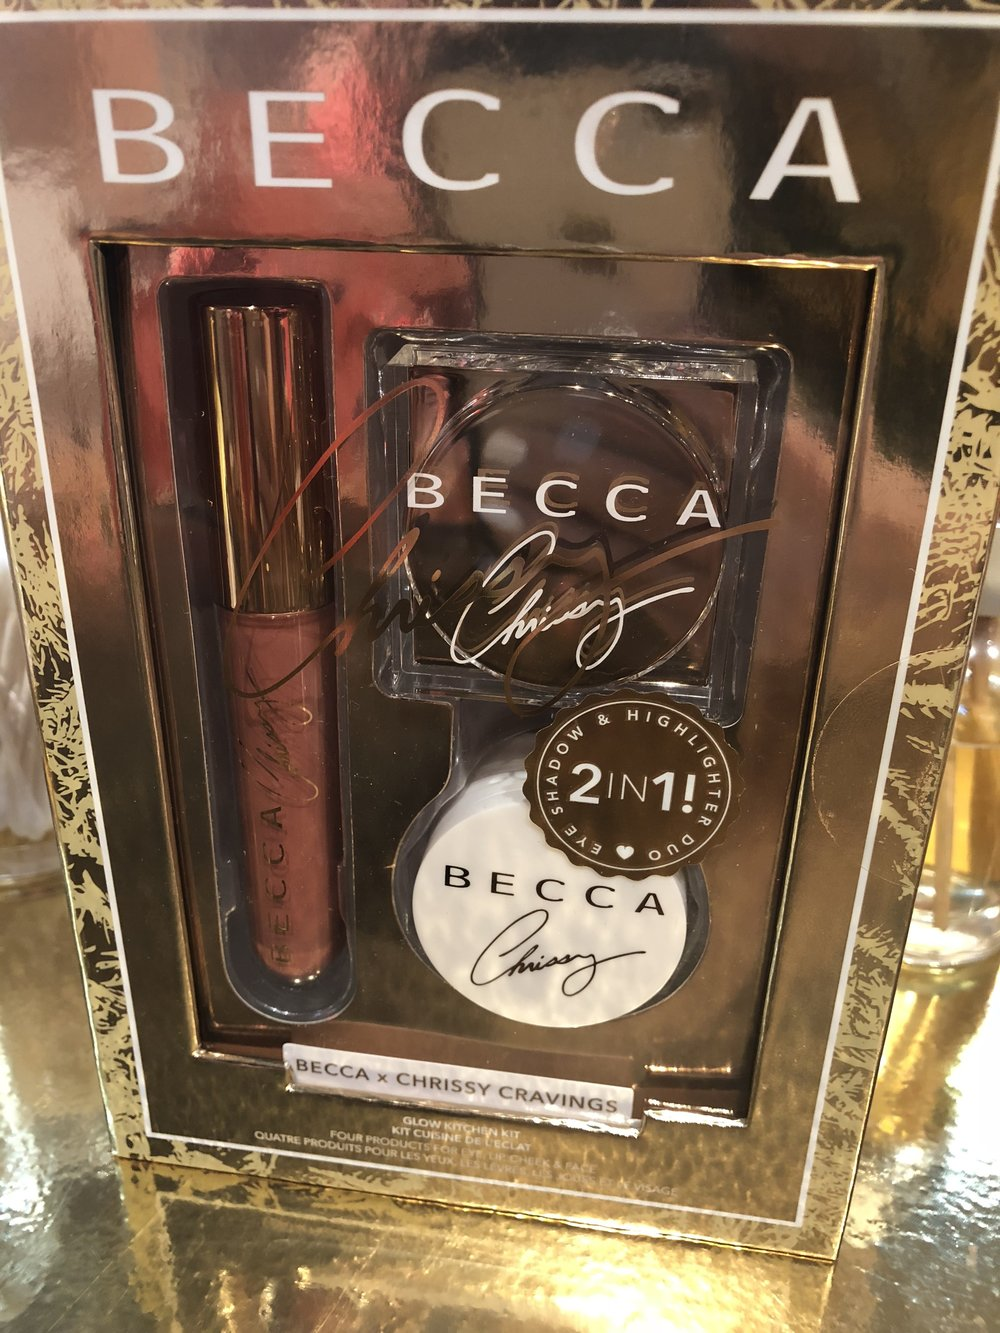 - Becca x Chrissy Teigen's scented holiday glow kit